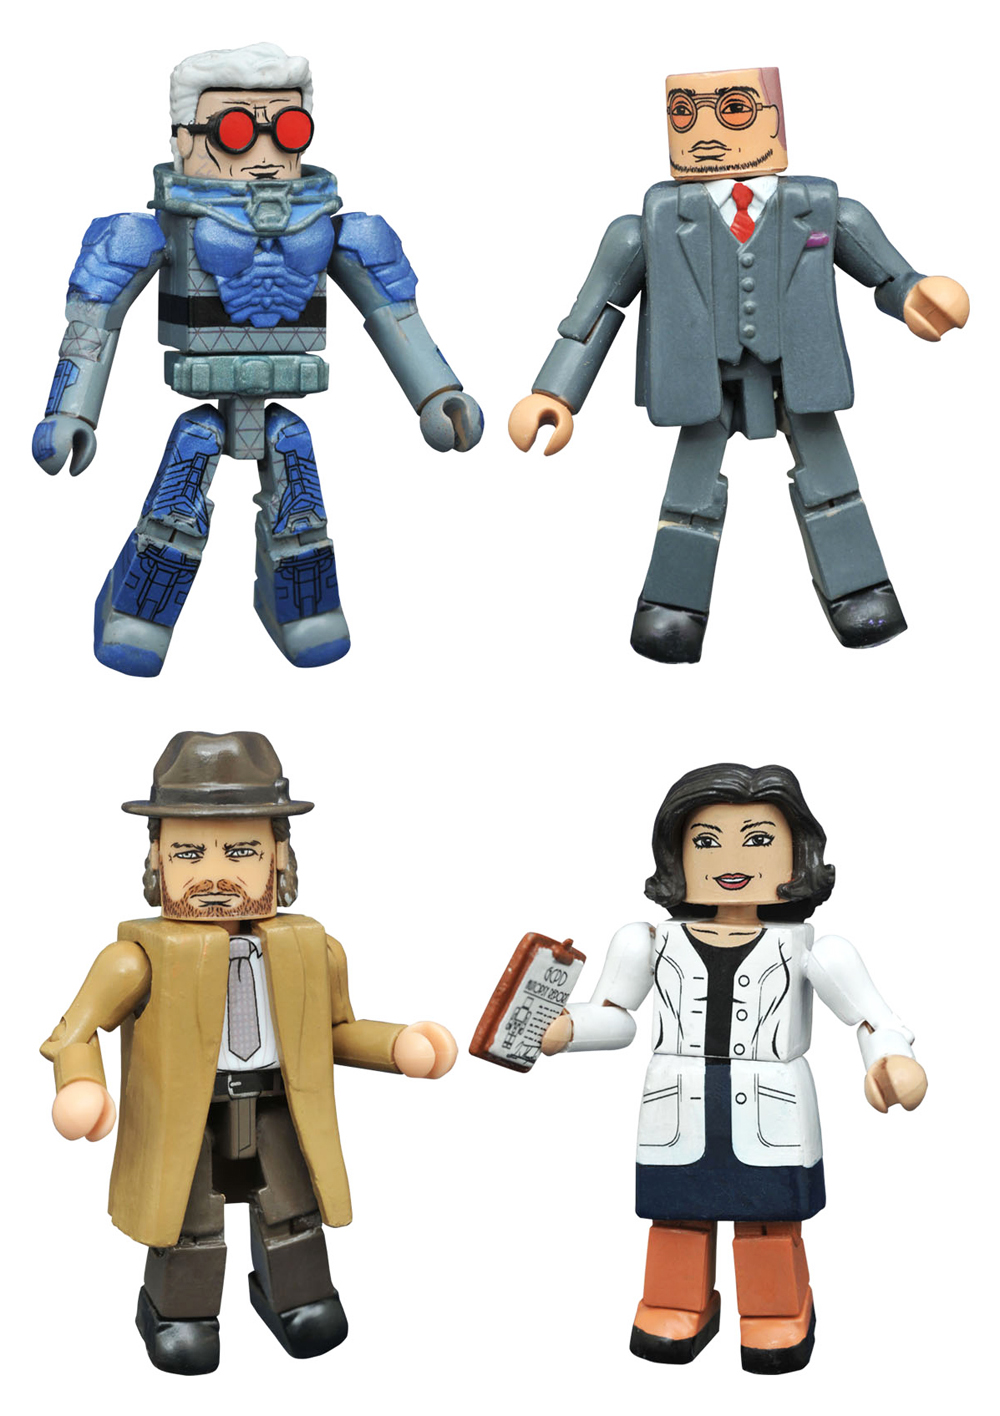 Gotham Minimates Series 4 Box Set